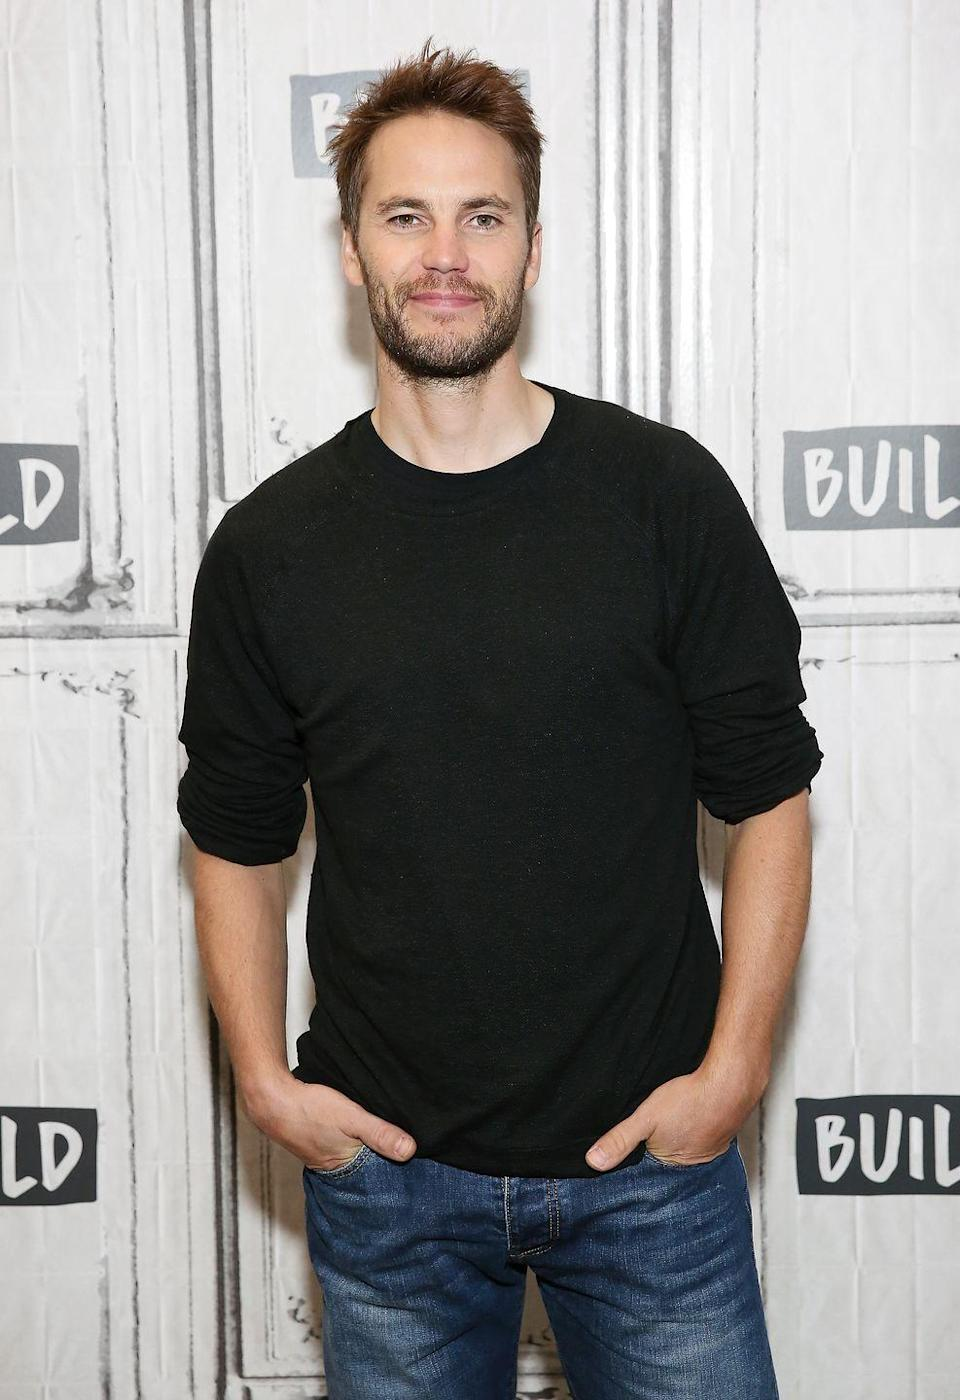 """<p>Since the show ended, Kitsch has starred in films like <em>John Carter</em>, <em>Lone Survivor</em>, and <em>Only the Brave</em>. He was last seen on-screen as David Koresh in Paramount Network's <em>Waco. In June,</em> he will premiere <a href=""""https://www.hollywoodreporter.com/news/berlin-first-look-taylor-kitsch-post-wwii-drama-shadowplay-1279740"""" rel=""""nofollow noopener"""" target=""""_blank"""" data-ylk=""""slk:his new series"""" class=""""link rapid-noclick-resp"""">his new series</a>, <em>Shadowplay</em>, at the Monte Carlo Television Festival.</p>"""